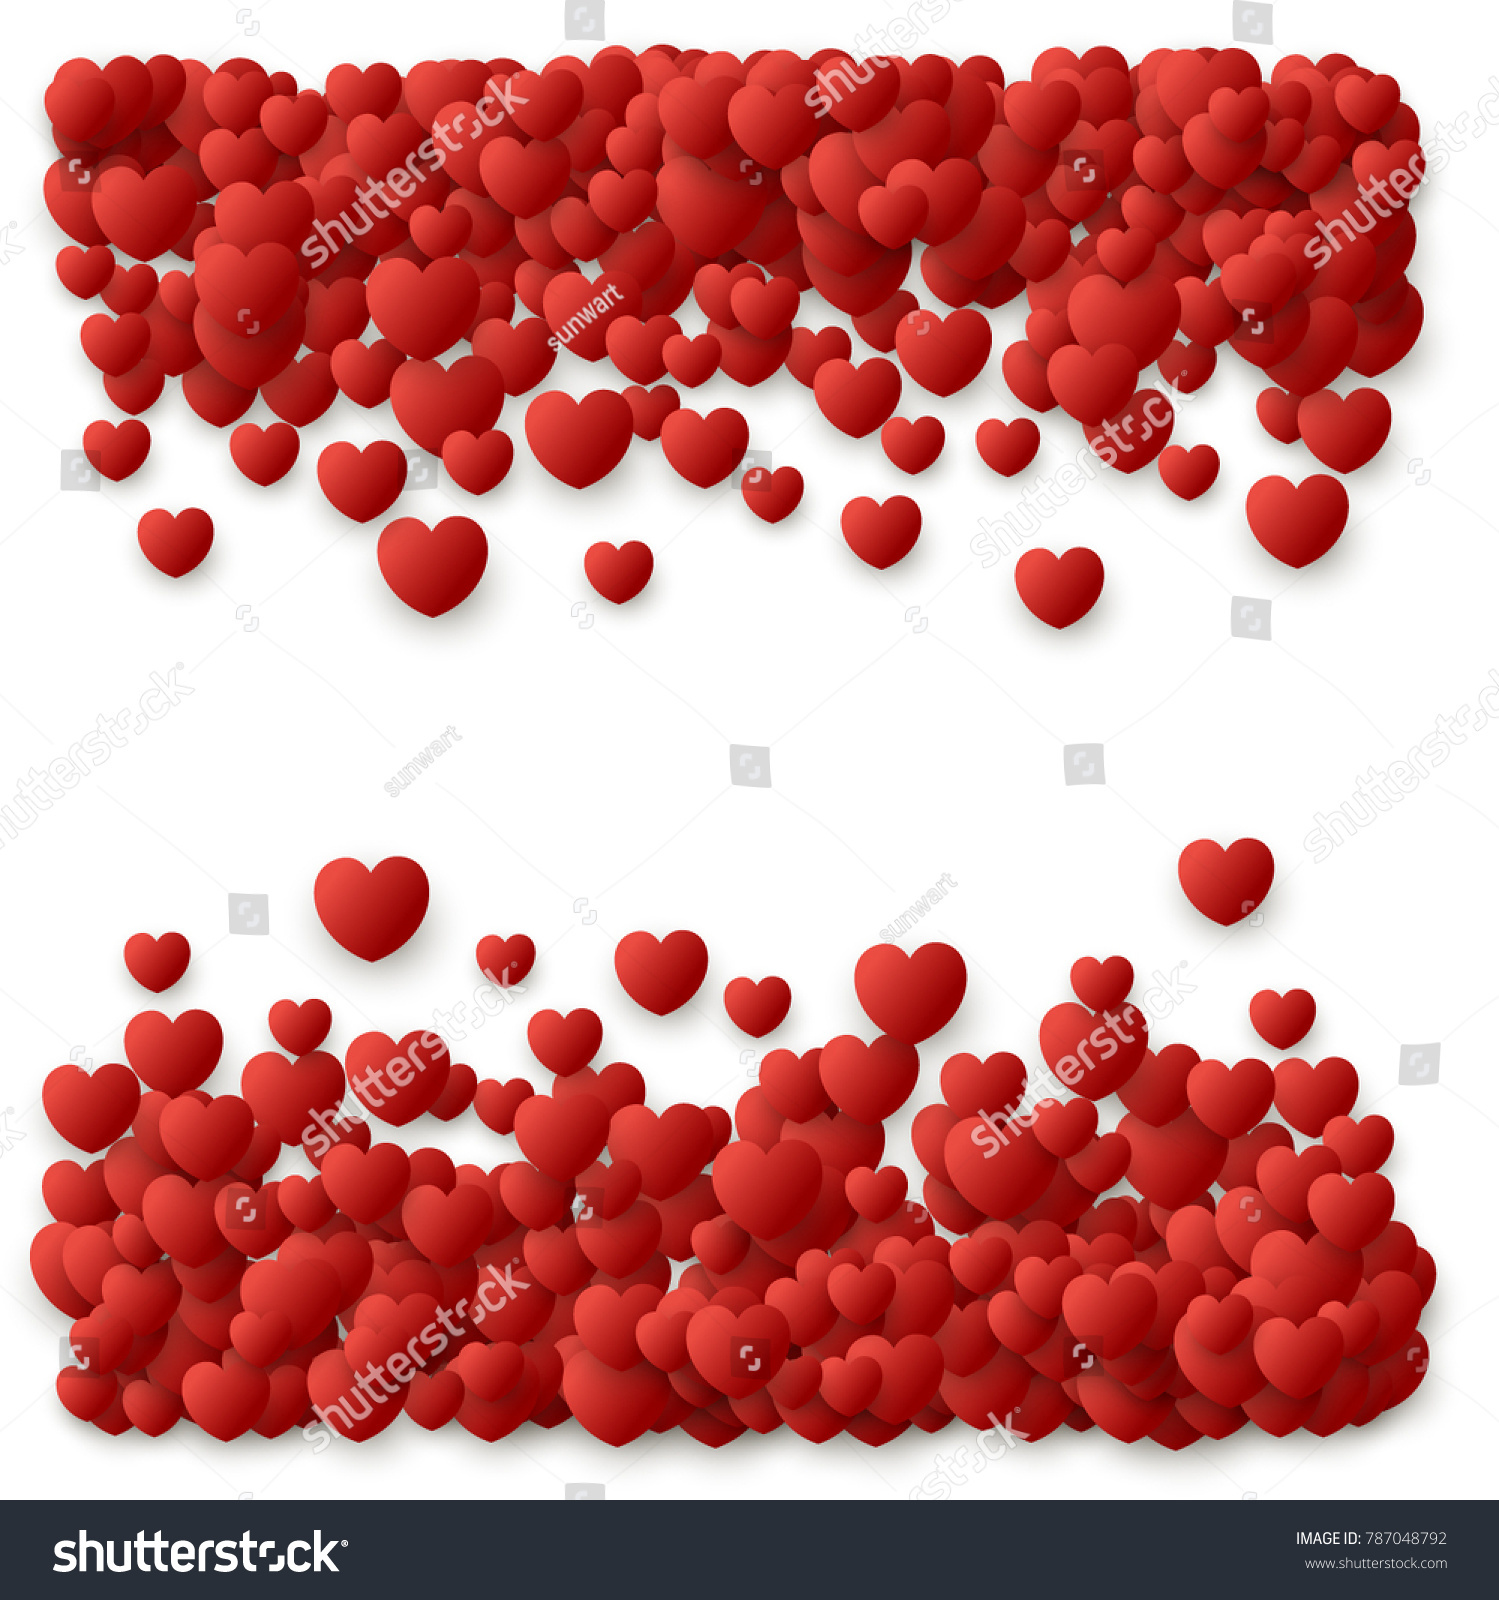 Heart love symbol border valentines day stock vector 787048792 heart love symbol border for valentines day red hearts flying confetti background border for biocorpaavc